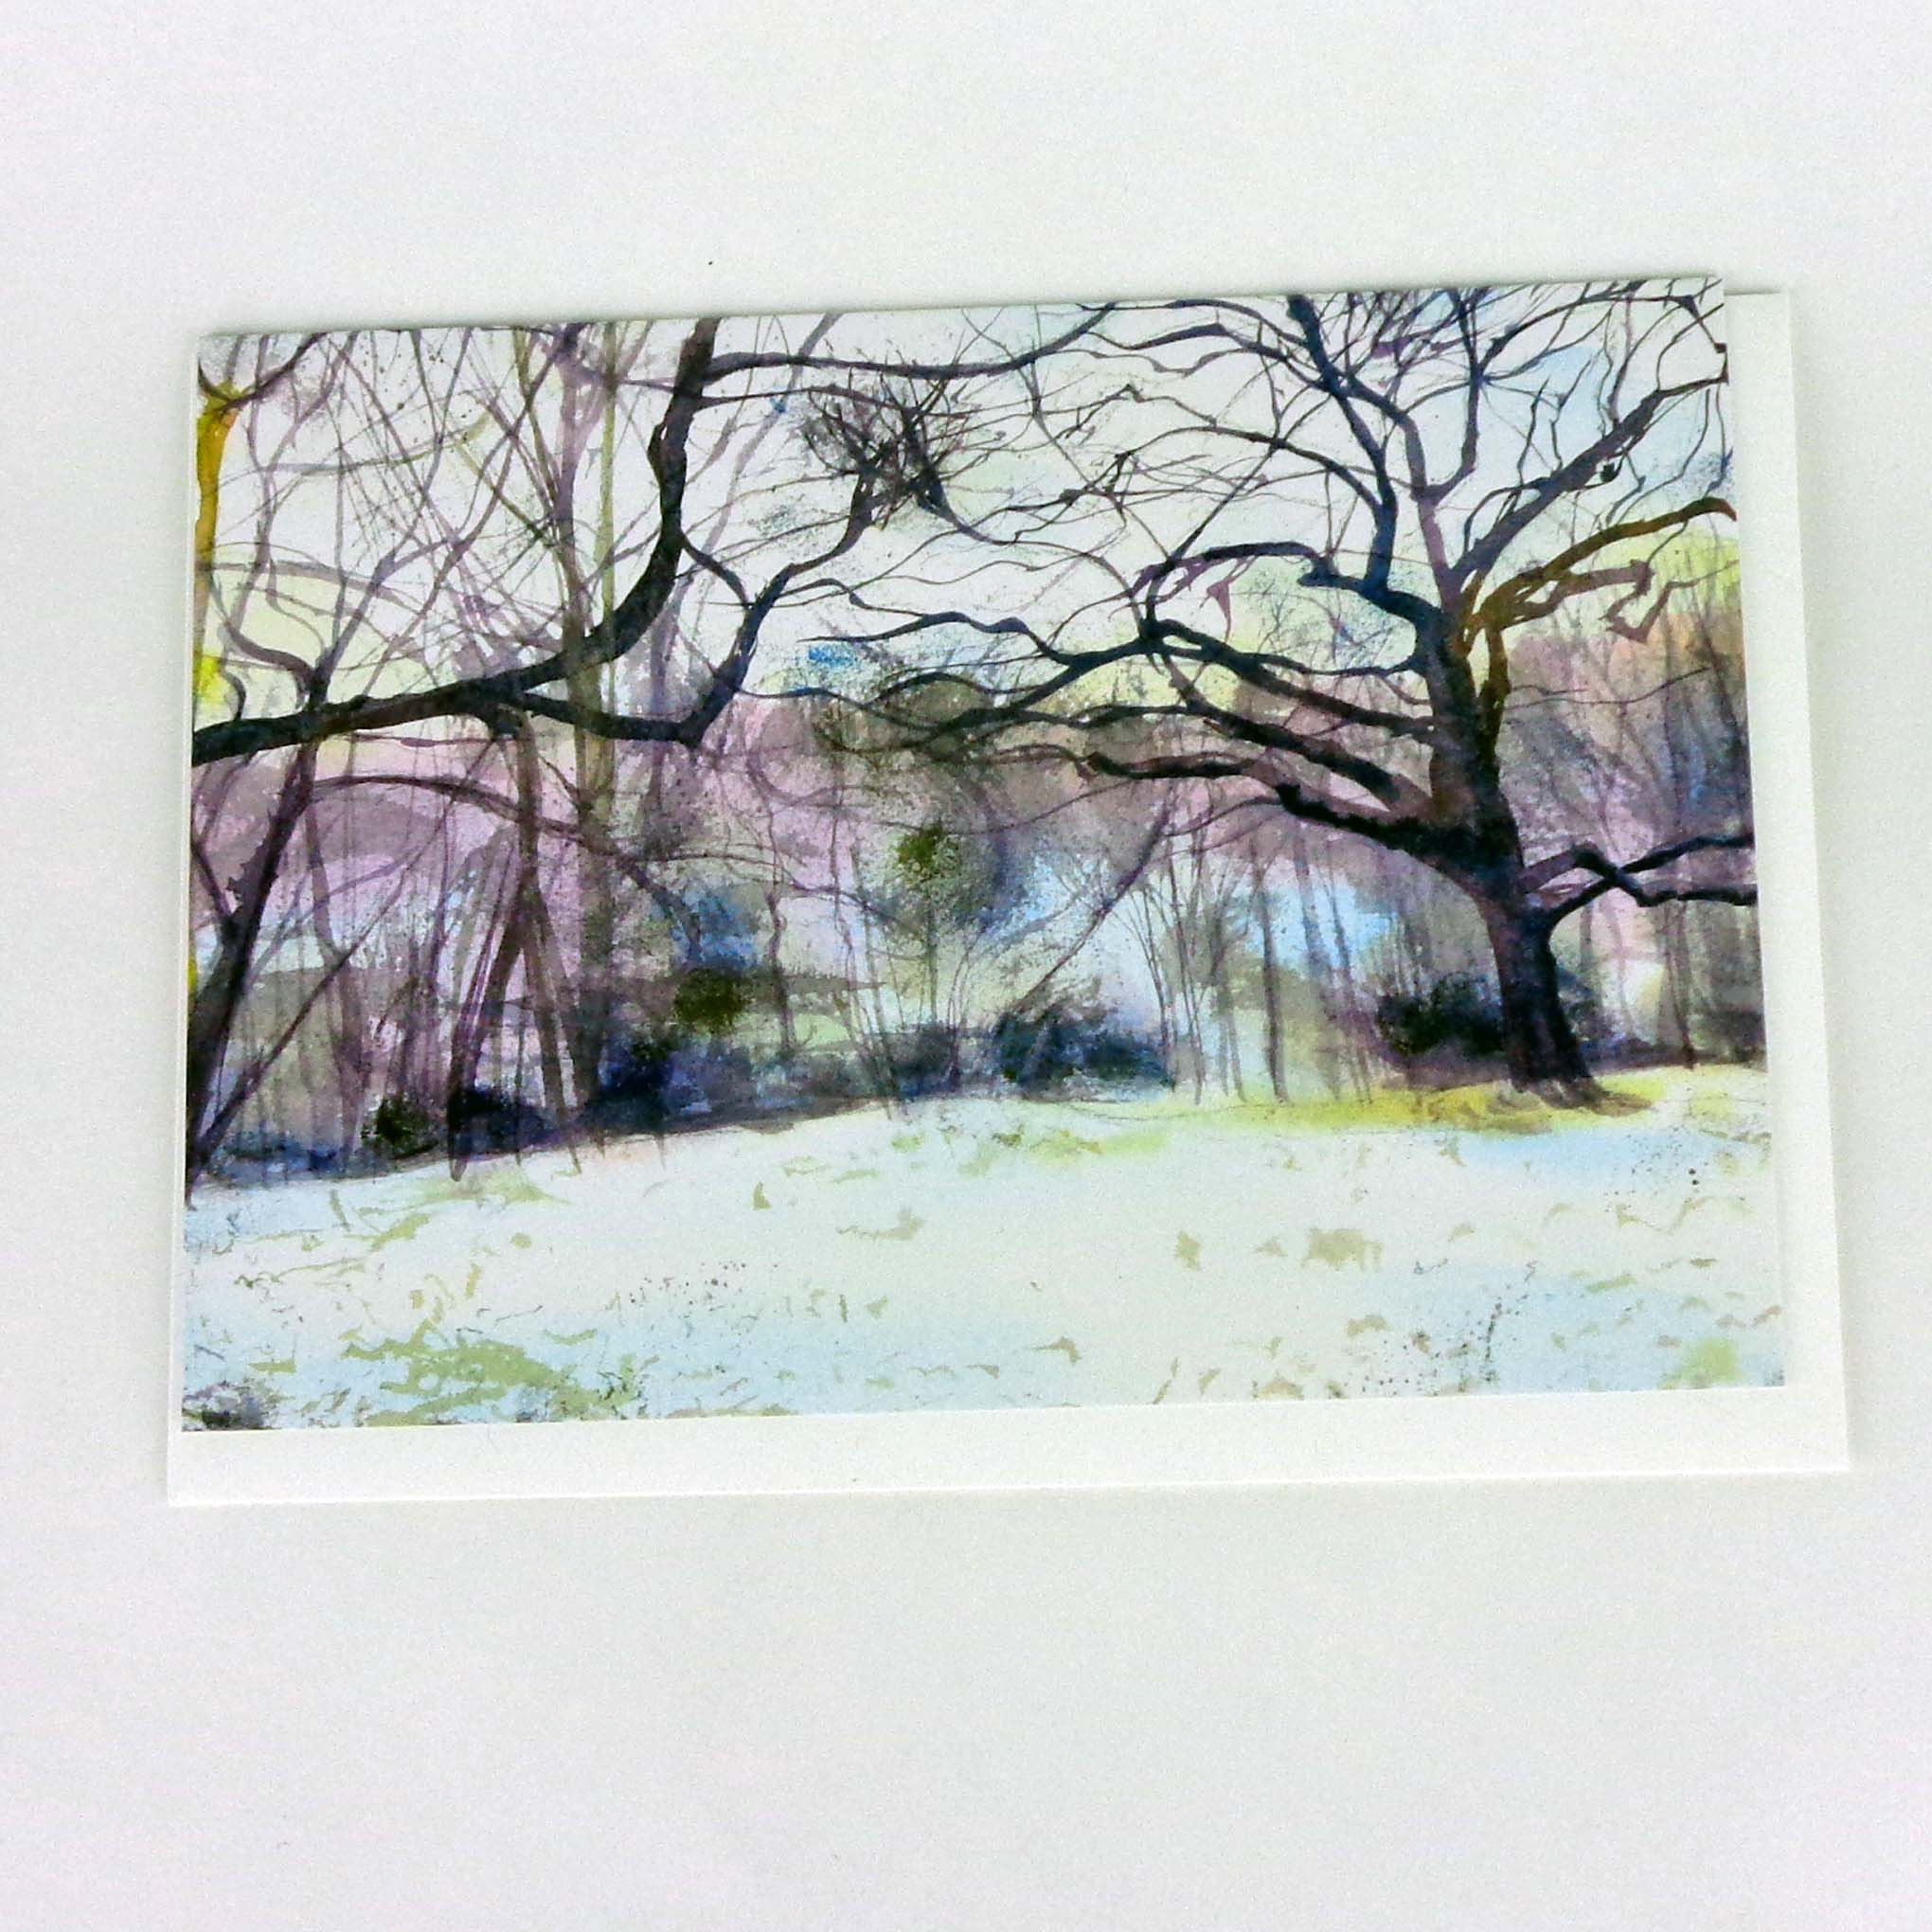 Hints of Spring Below the Snow, greeting card